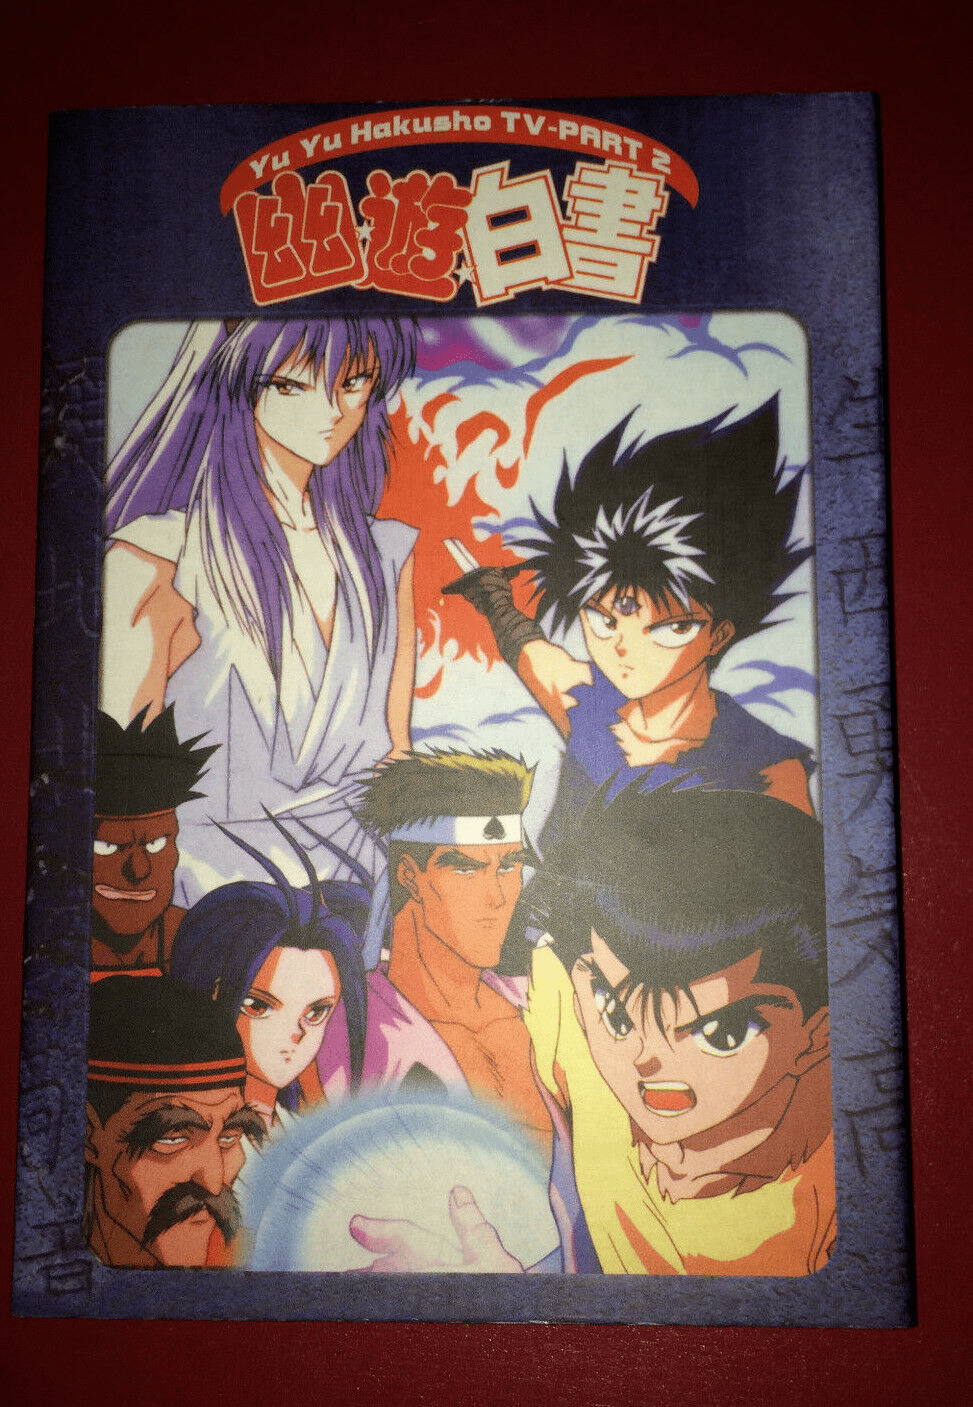 Yu Yu Hakusho TV Part 2 (3 discs)